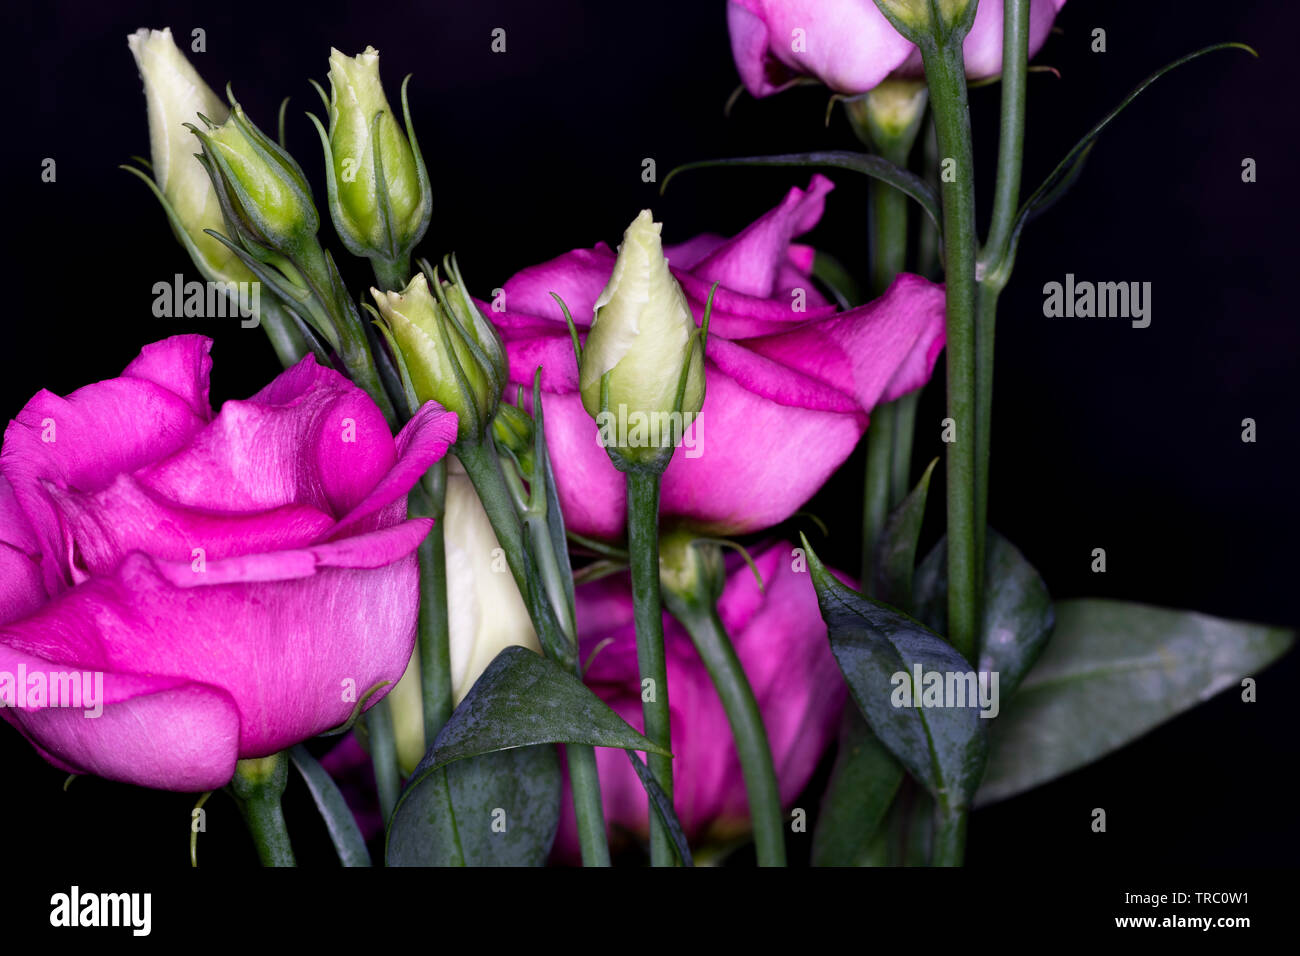 Eustoma, commonly known as lisianthus or prairie gentian, genus in the gentian family, macro with shallow depth of field - Stock Image